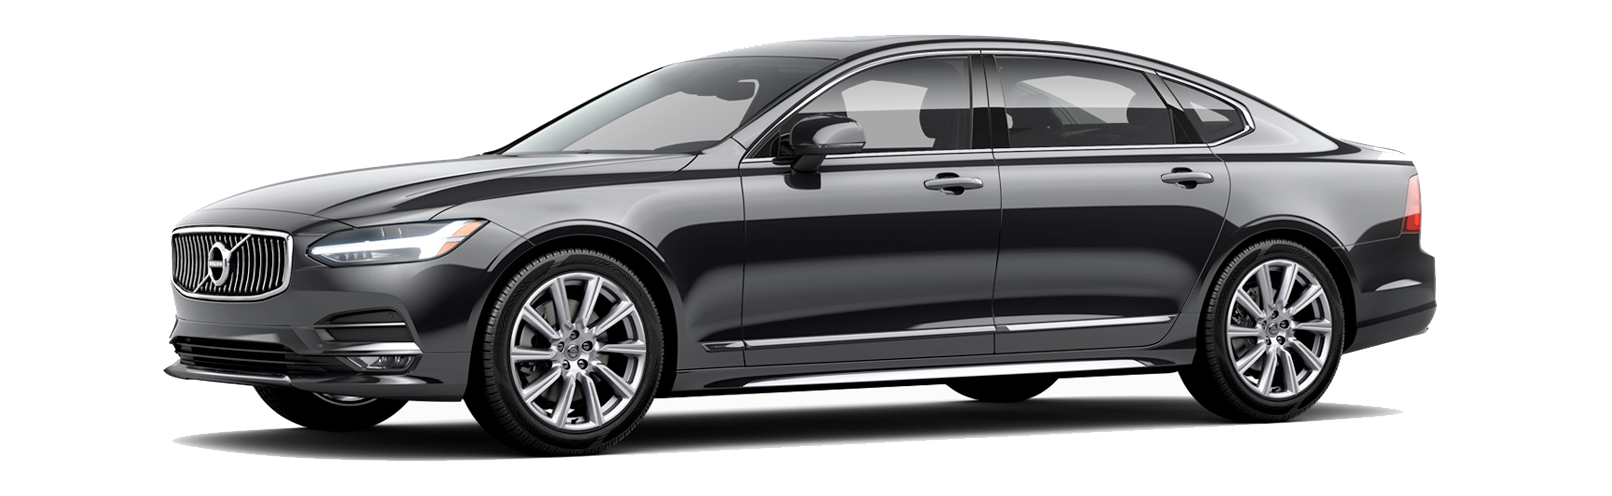 2019 Volvo S90 Inscription